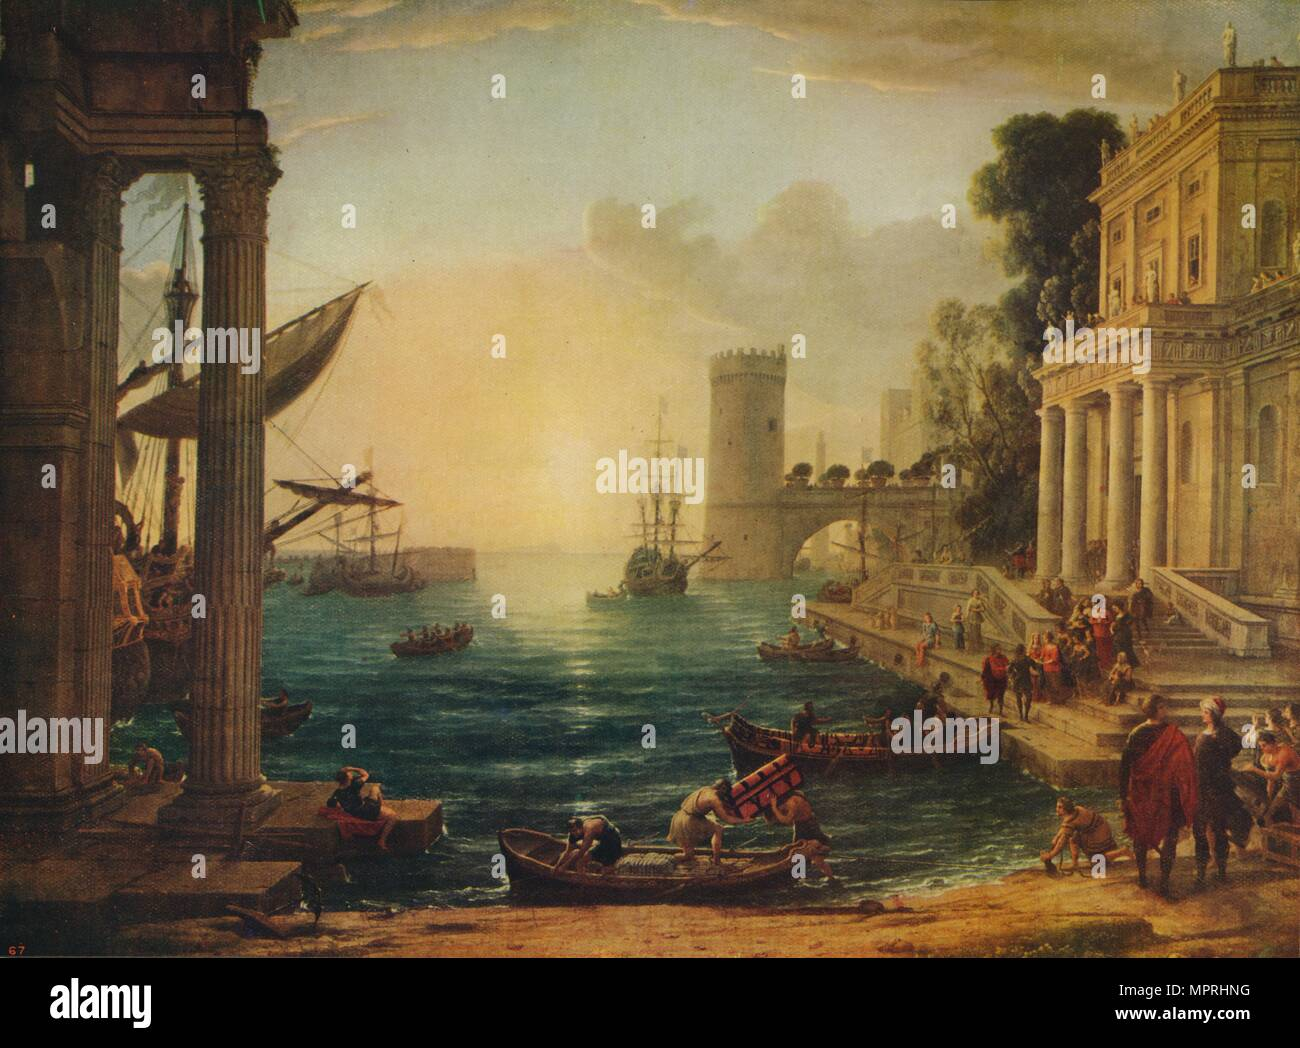 'The Embarkation of the Queen of Sheba', 1648, (c1915). Artist: Claude Lorrain. - Stock Image